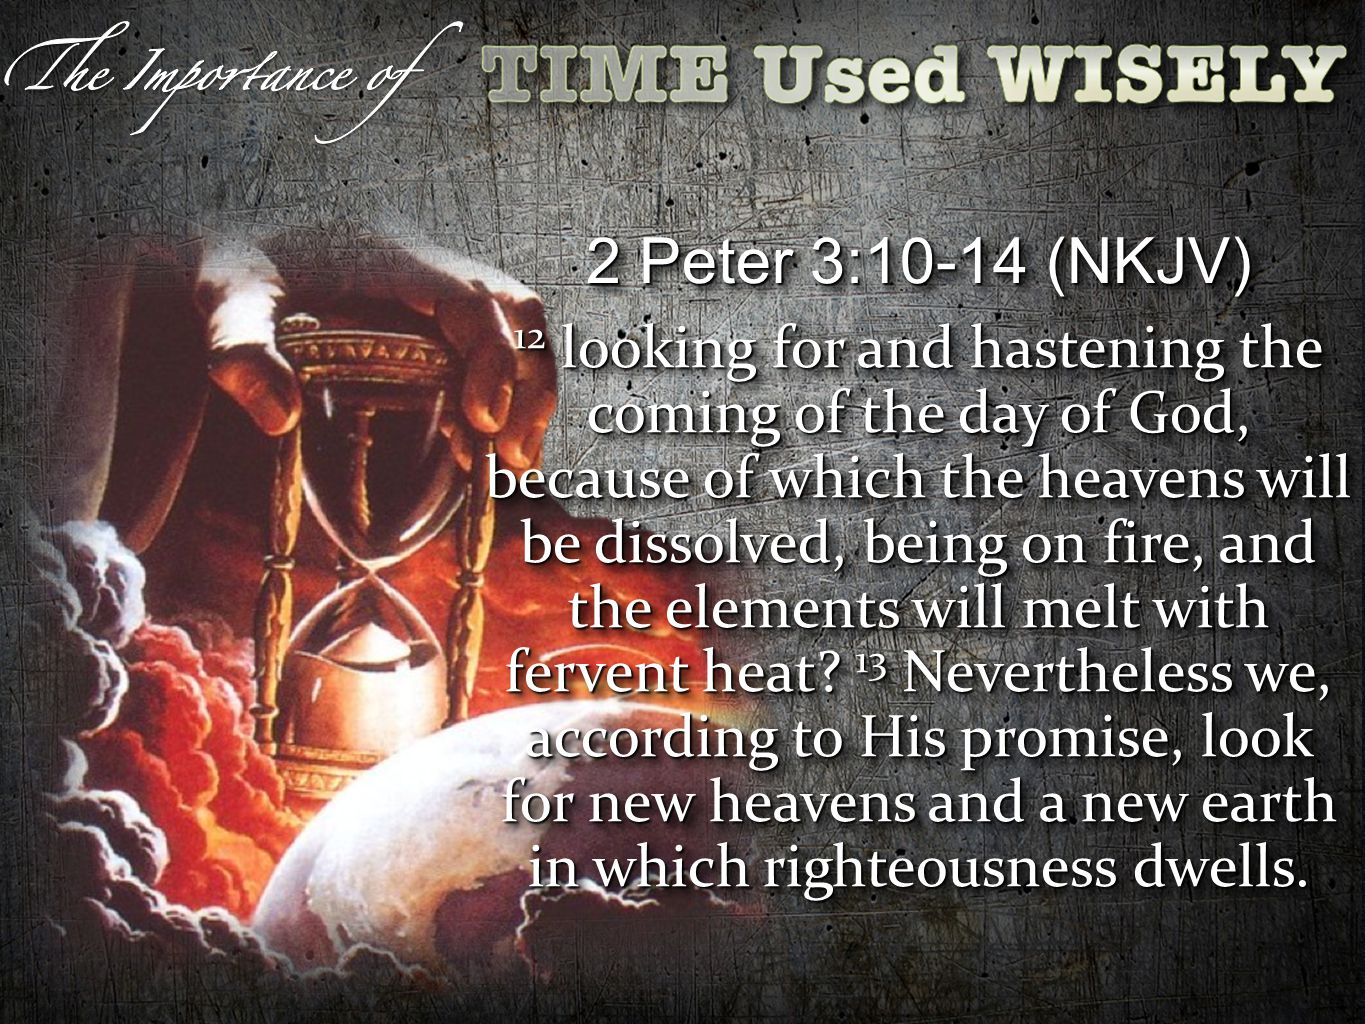 2 Peter 3:10-14 (NKJV) 12 looking for and hastening the coming of the day of God, because of which the heavens will be dissolved, being on fire, and the elements will melt with fervent heat.